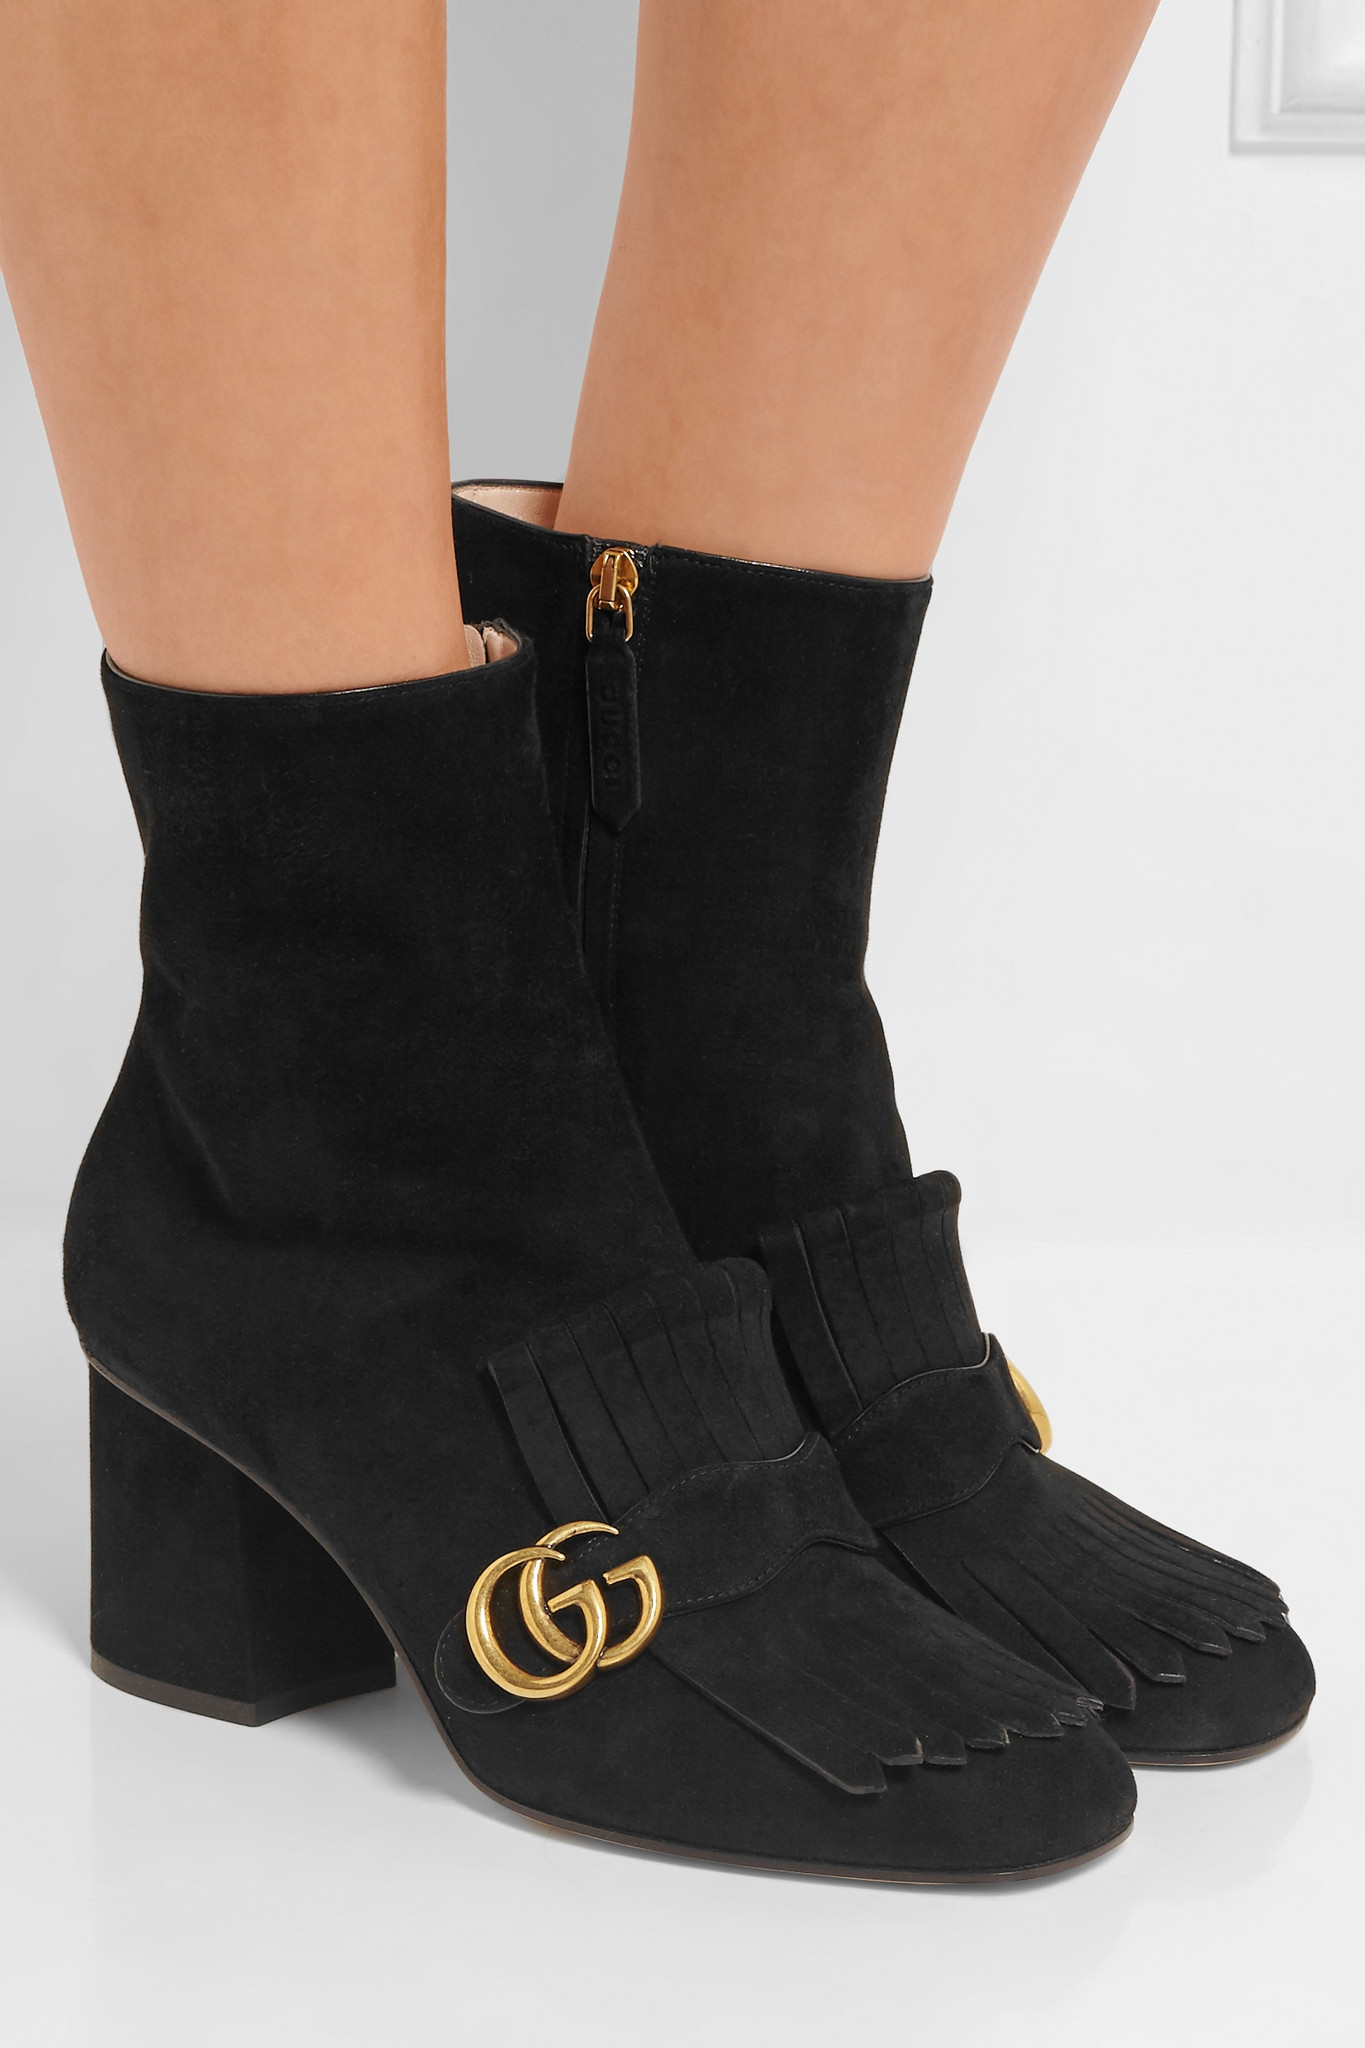 Gucci Fringed Suede Ankle Boots in